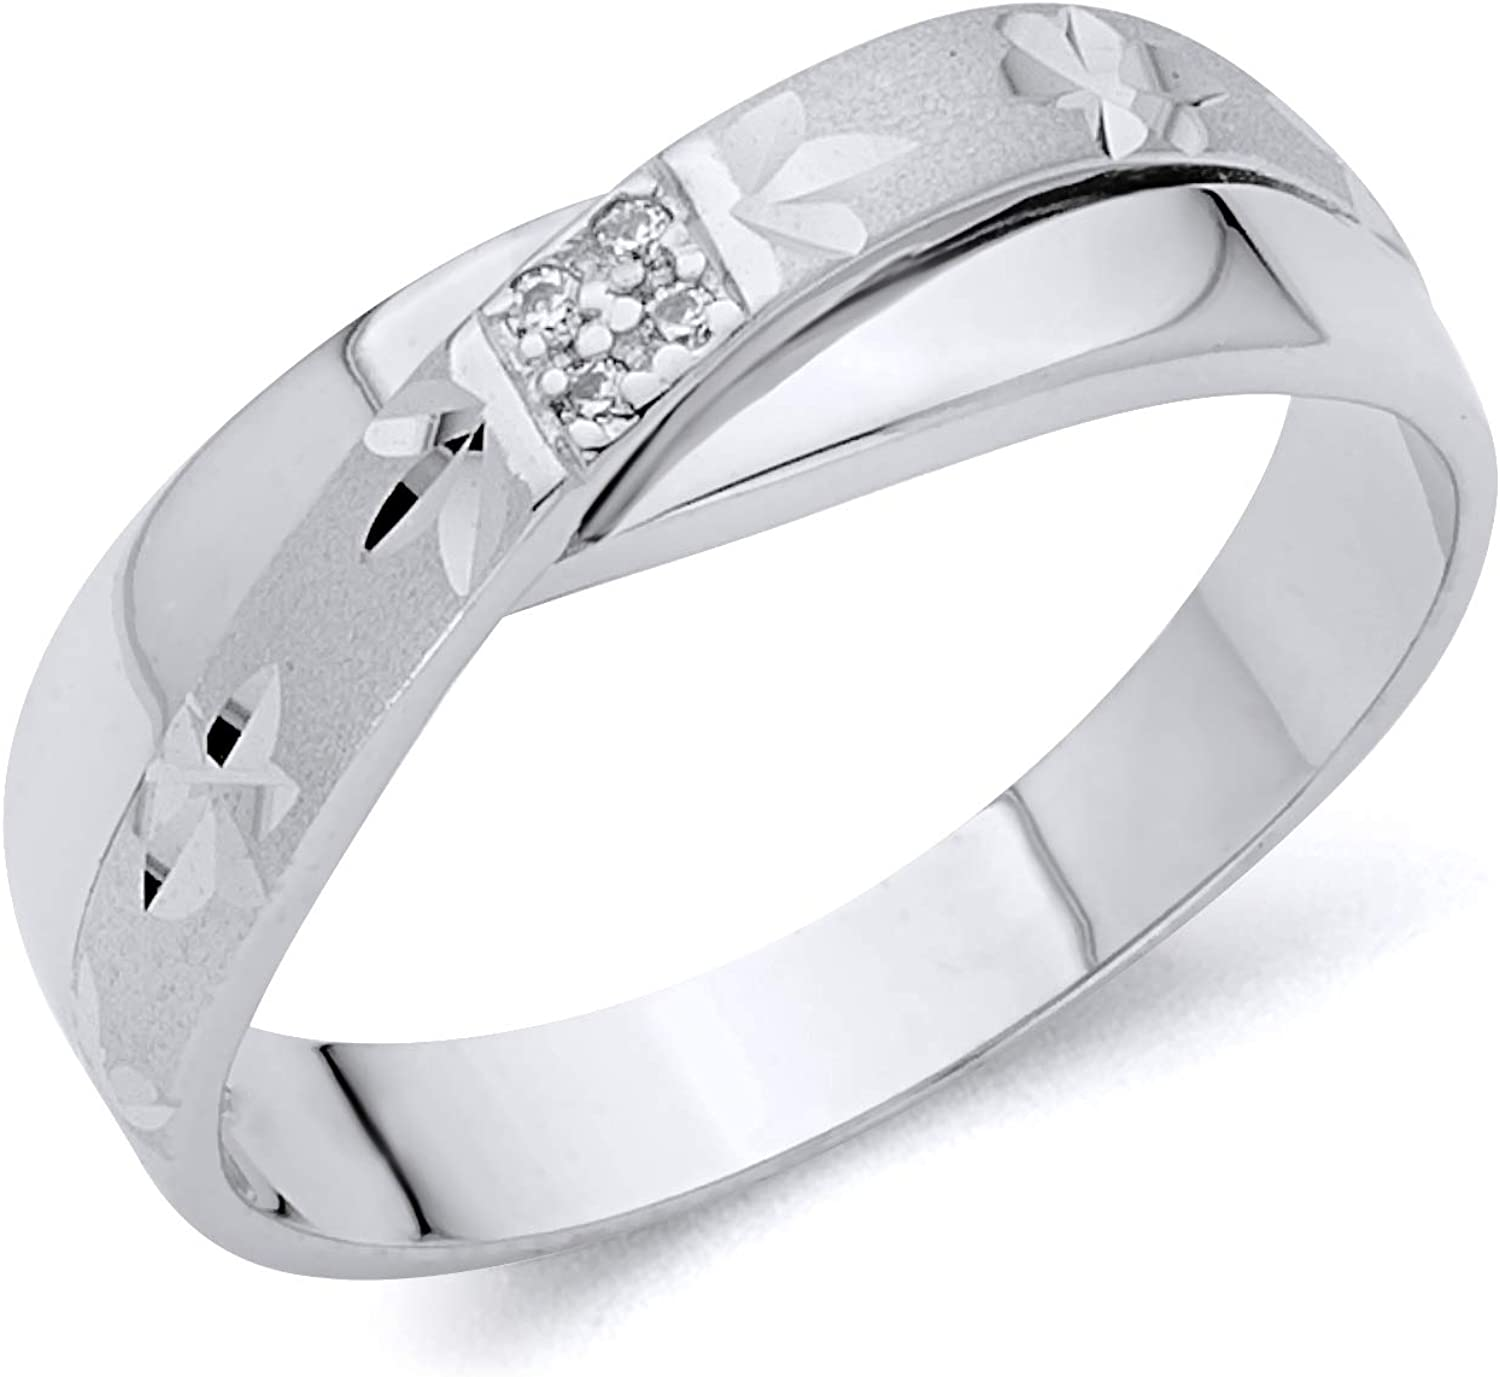 It is a photo of Wellingsale Mens Solid 44k White Gold CZ Cubic Zirconia Wedding